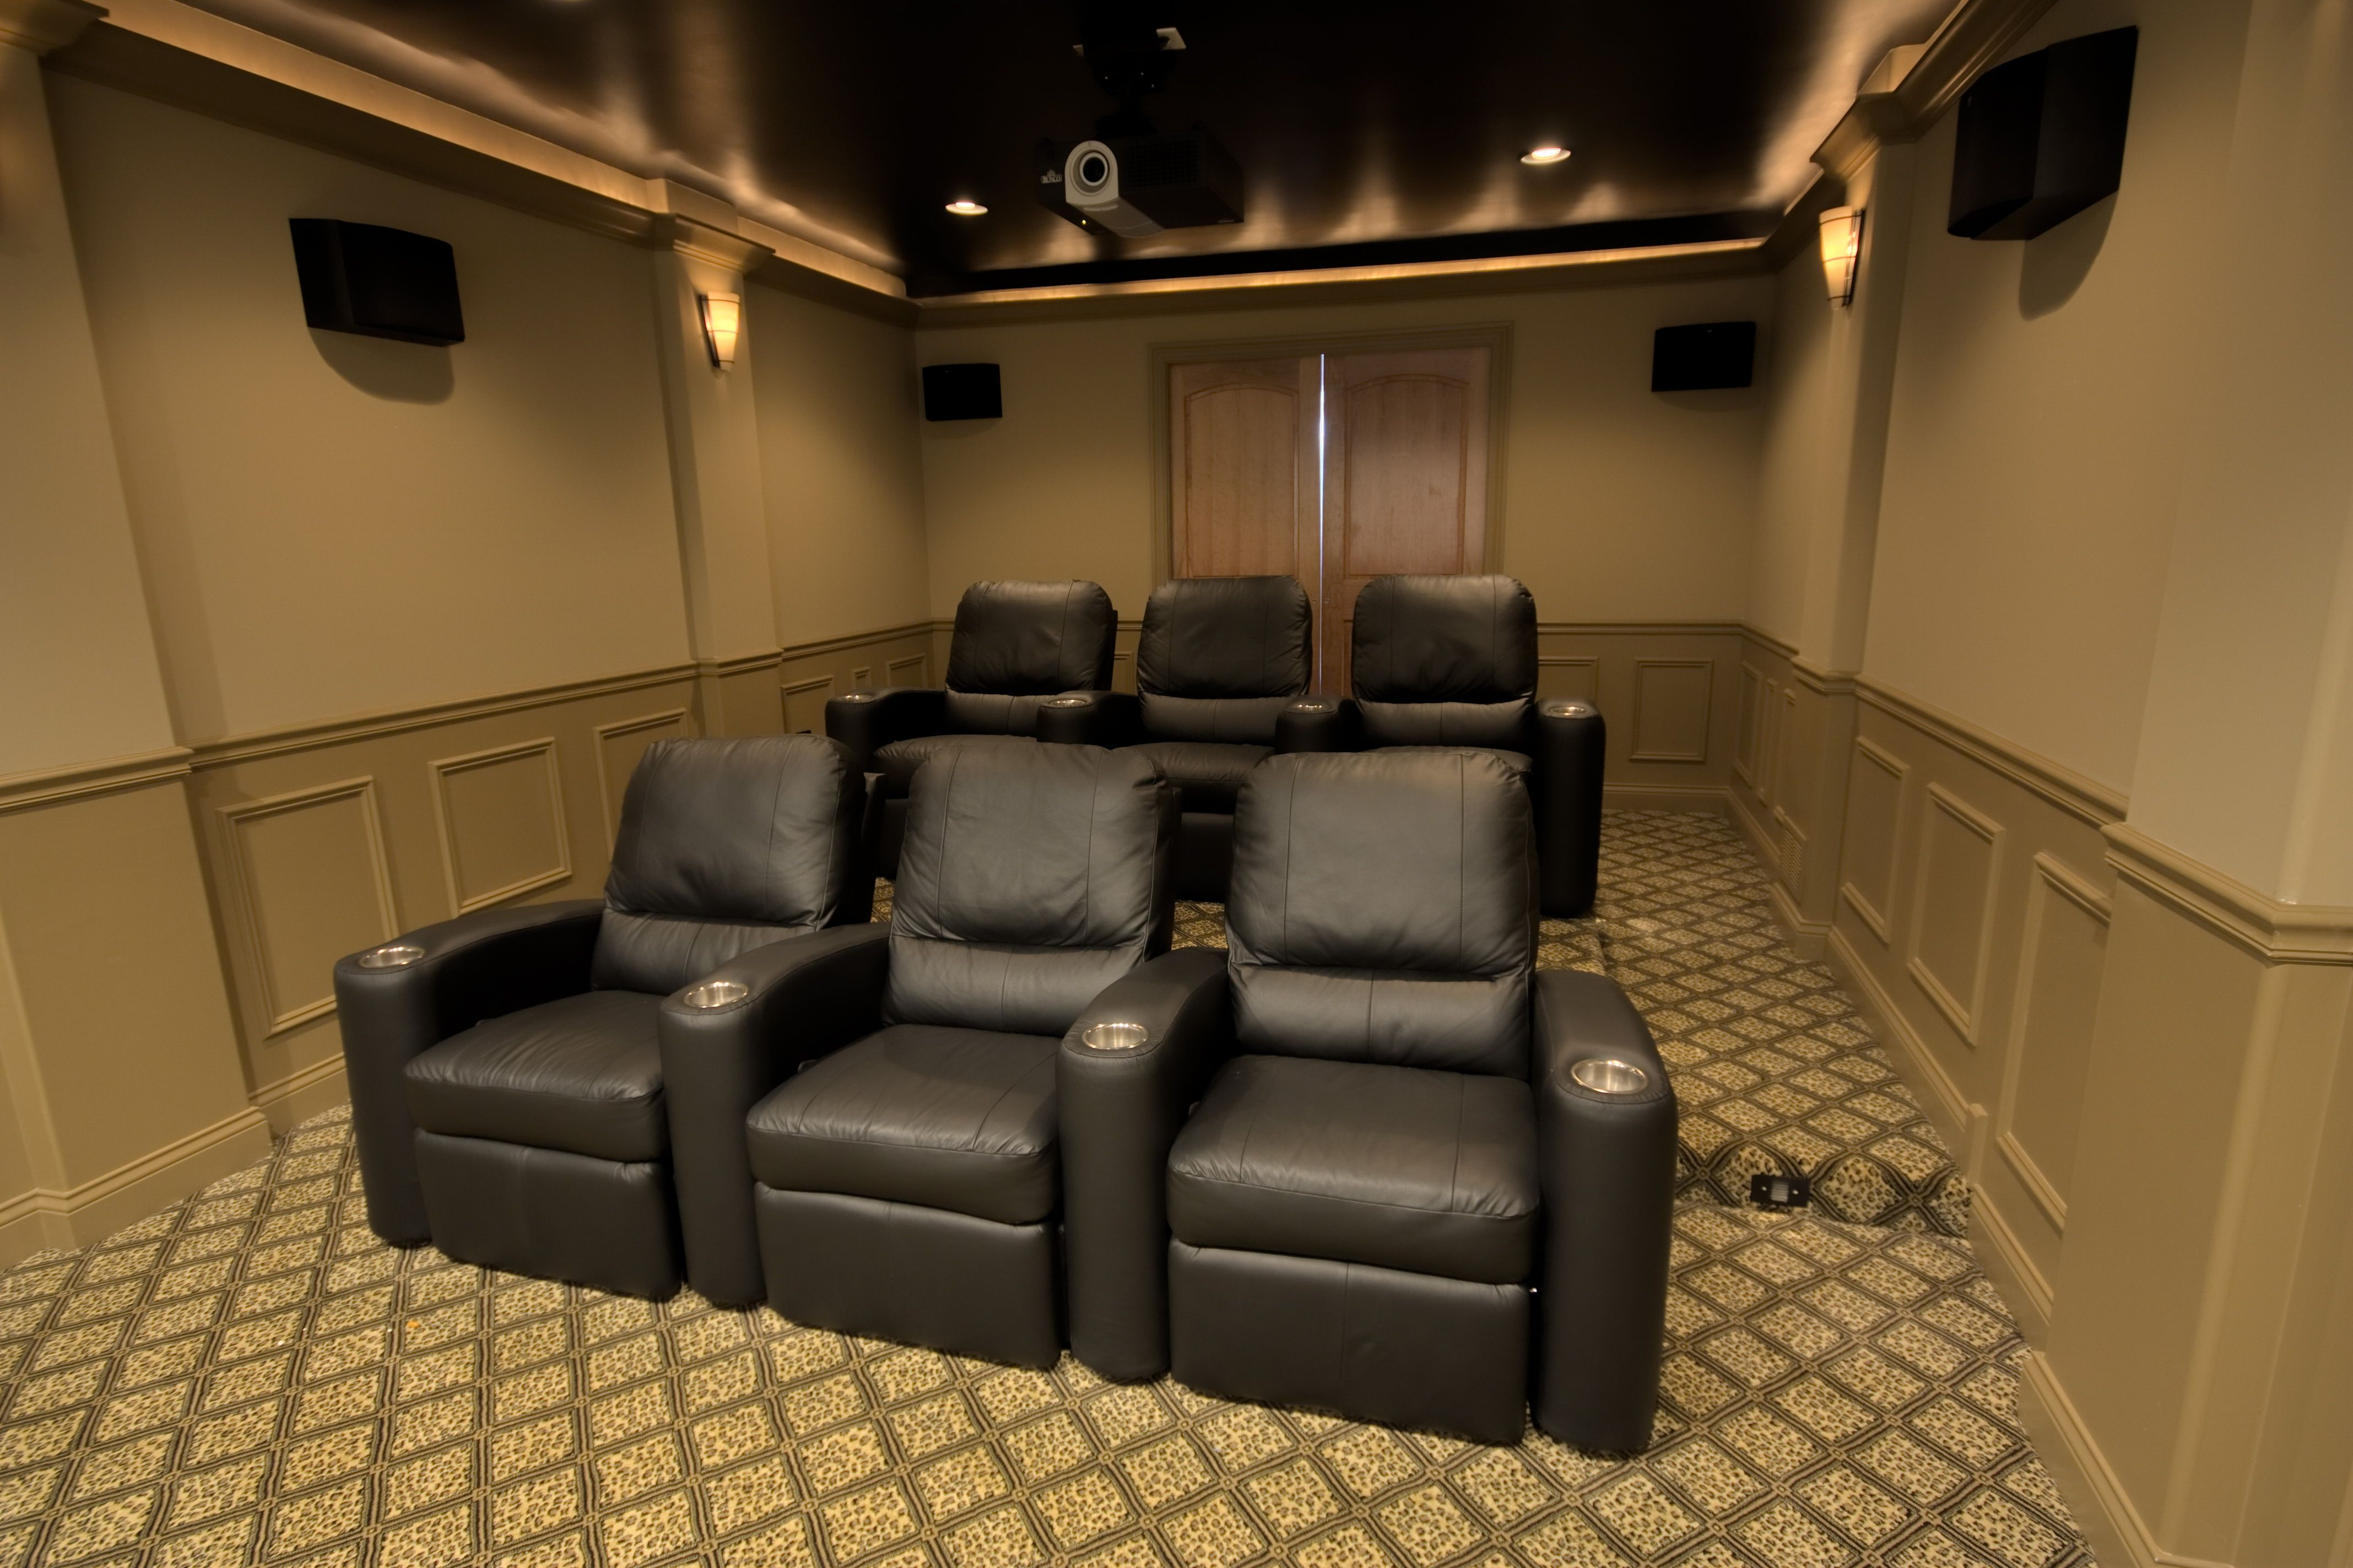 Theatre Room Chairs Outdoor Sports Balancing The Budget Home Theater Design Basement Sound Vision Cinema Rooms